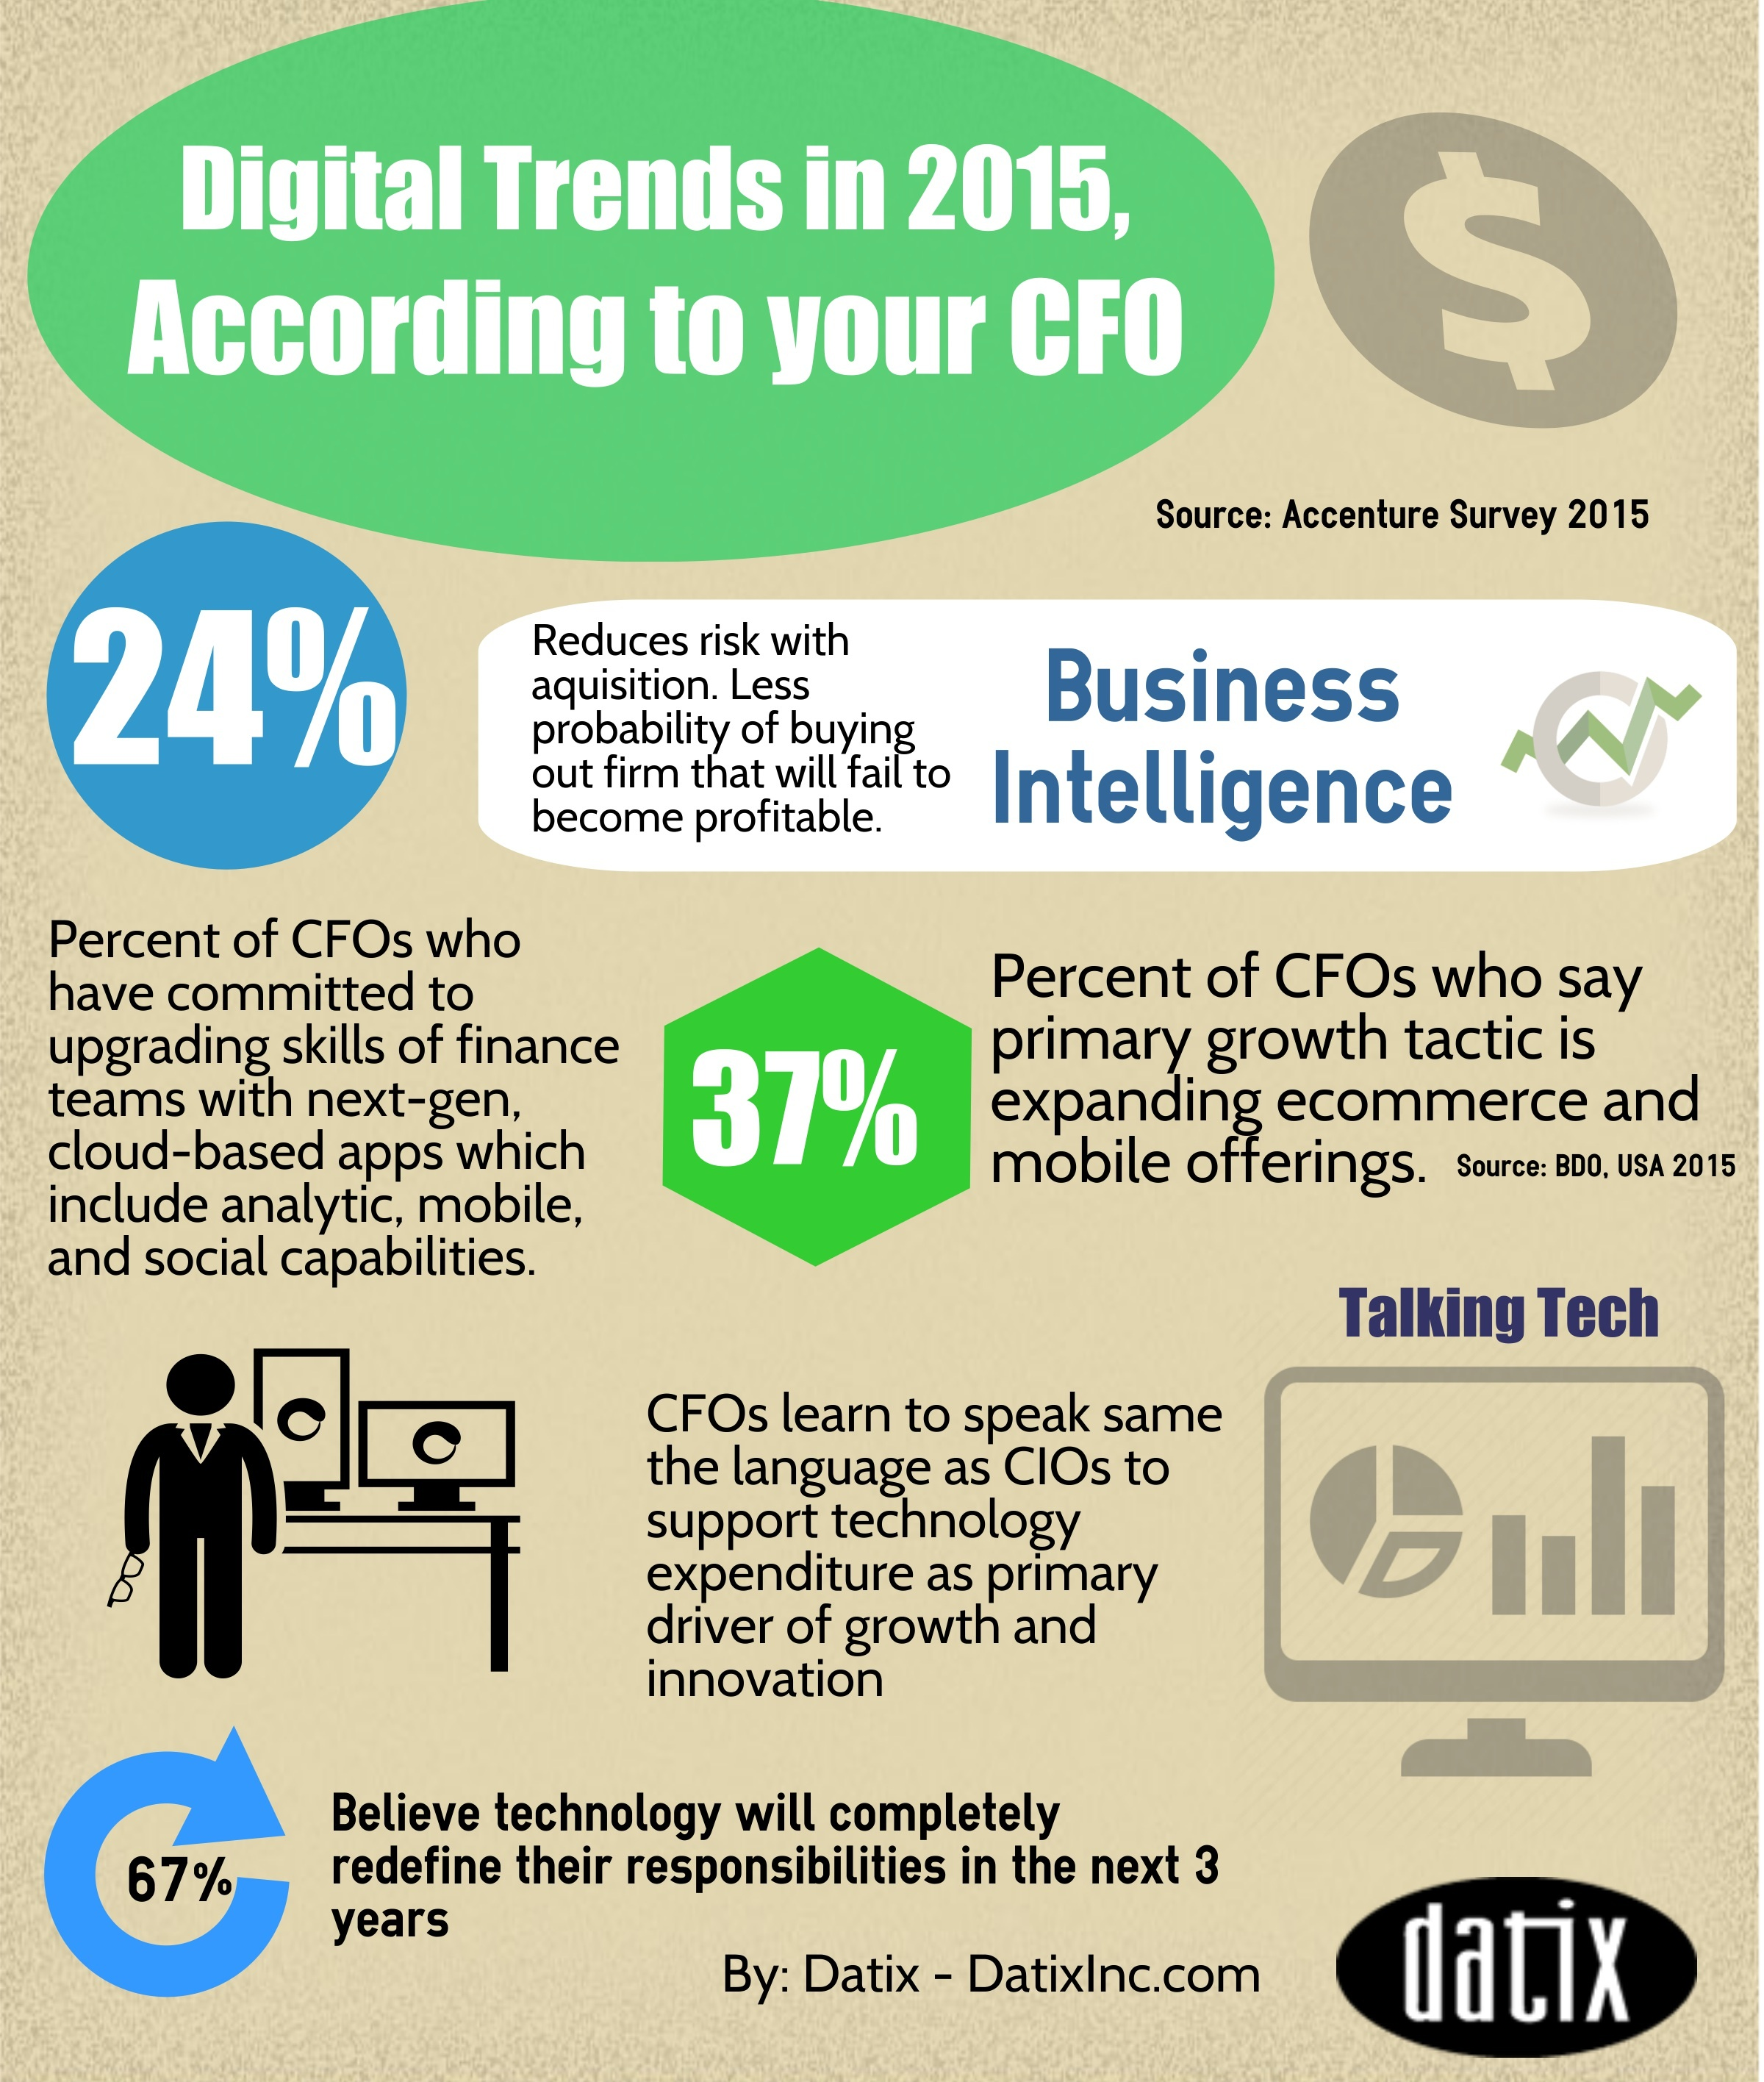 Enterprise Software Trends According To Your CFO